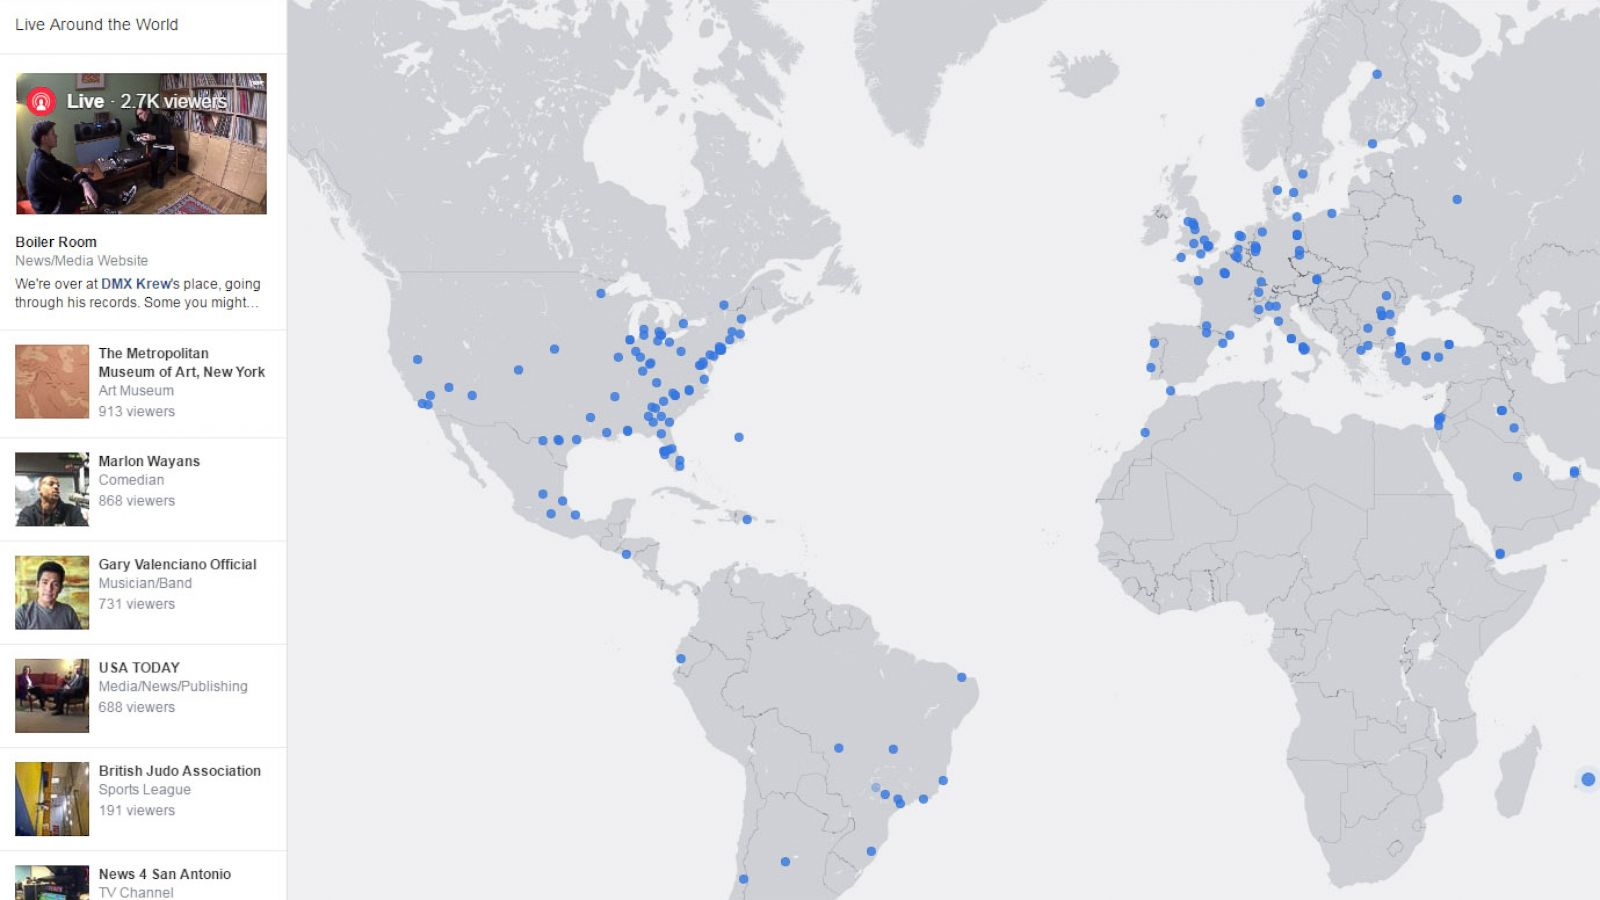 Facebook's Interactive Map Lets You Discover Live Video From